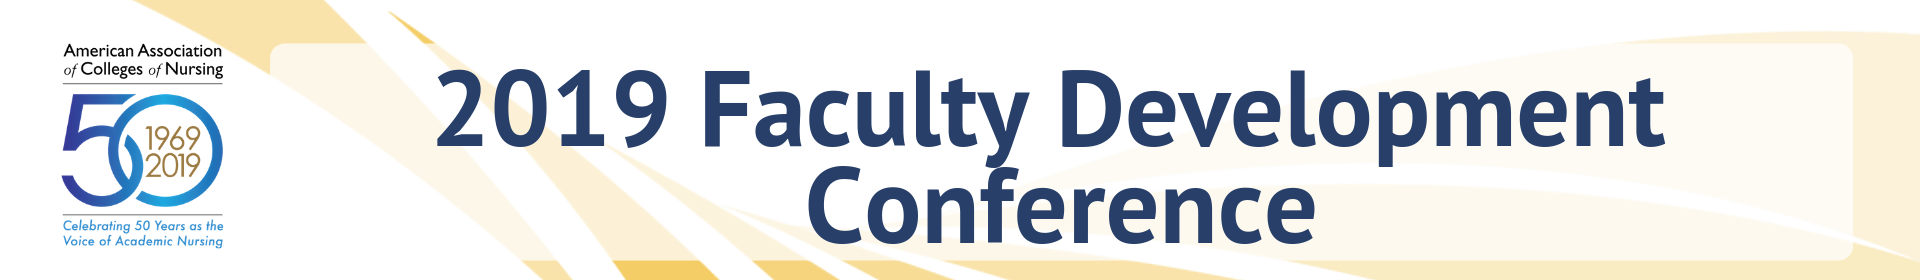 Faculty Development Conference Event Banner